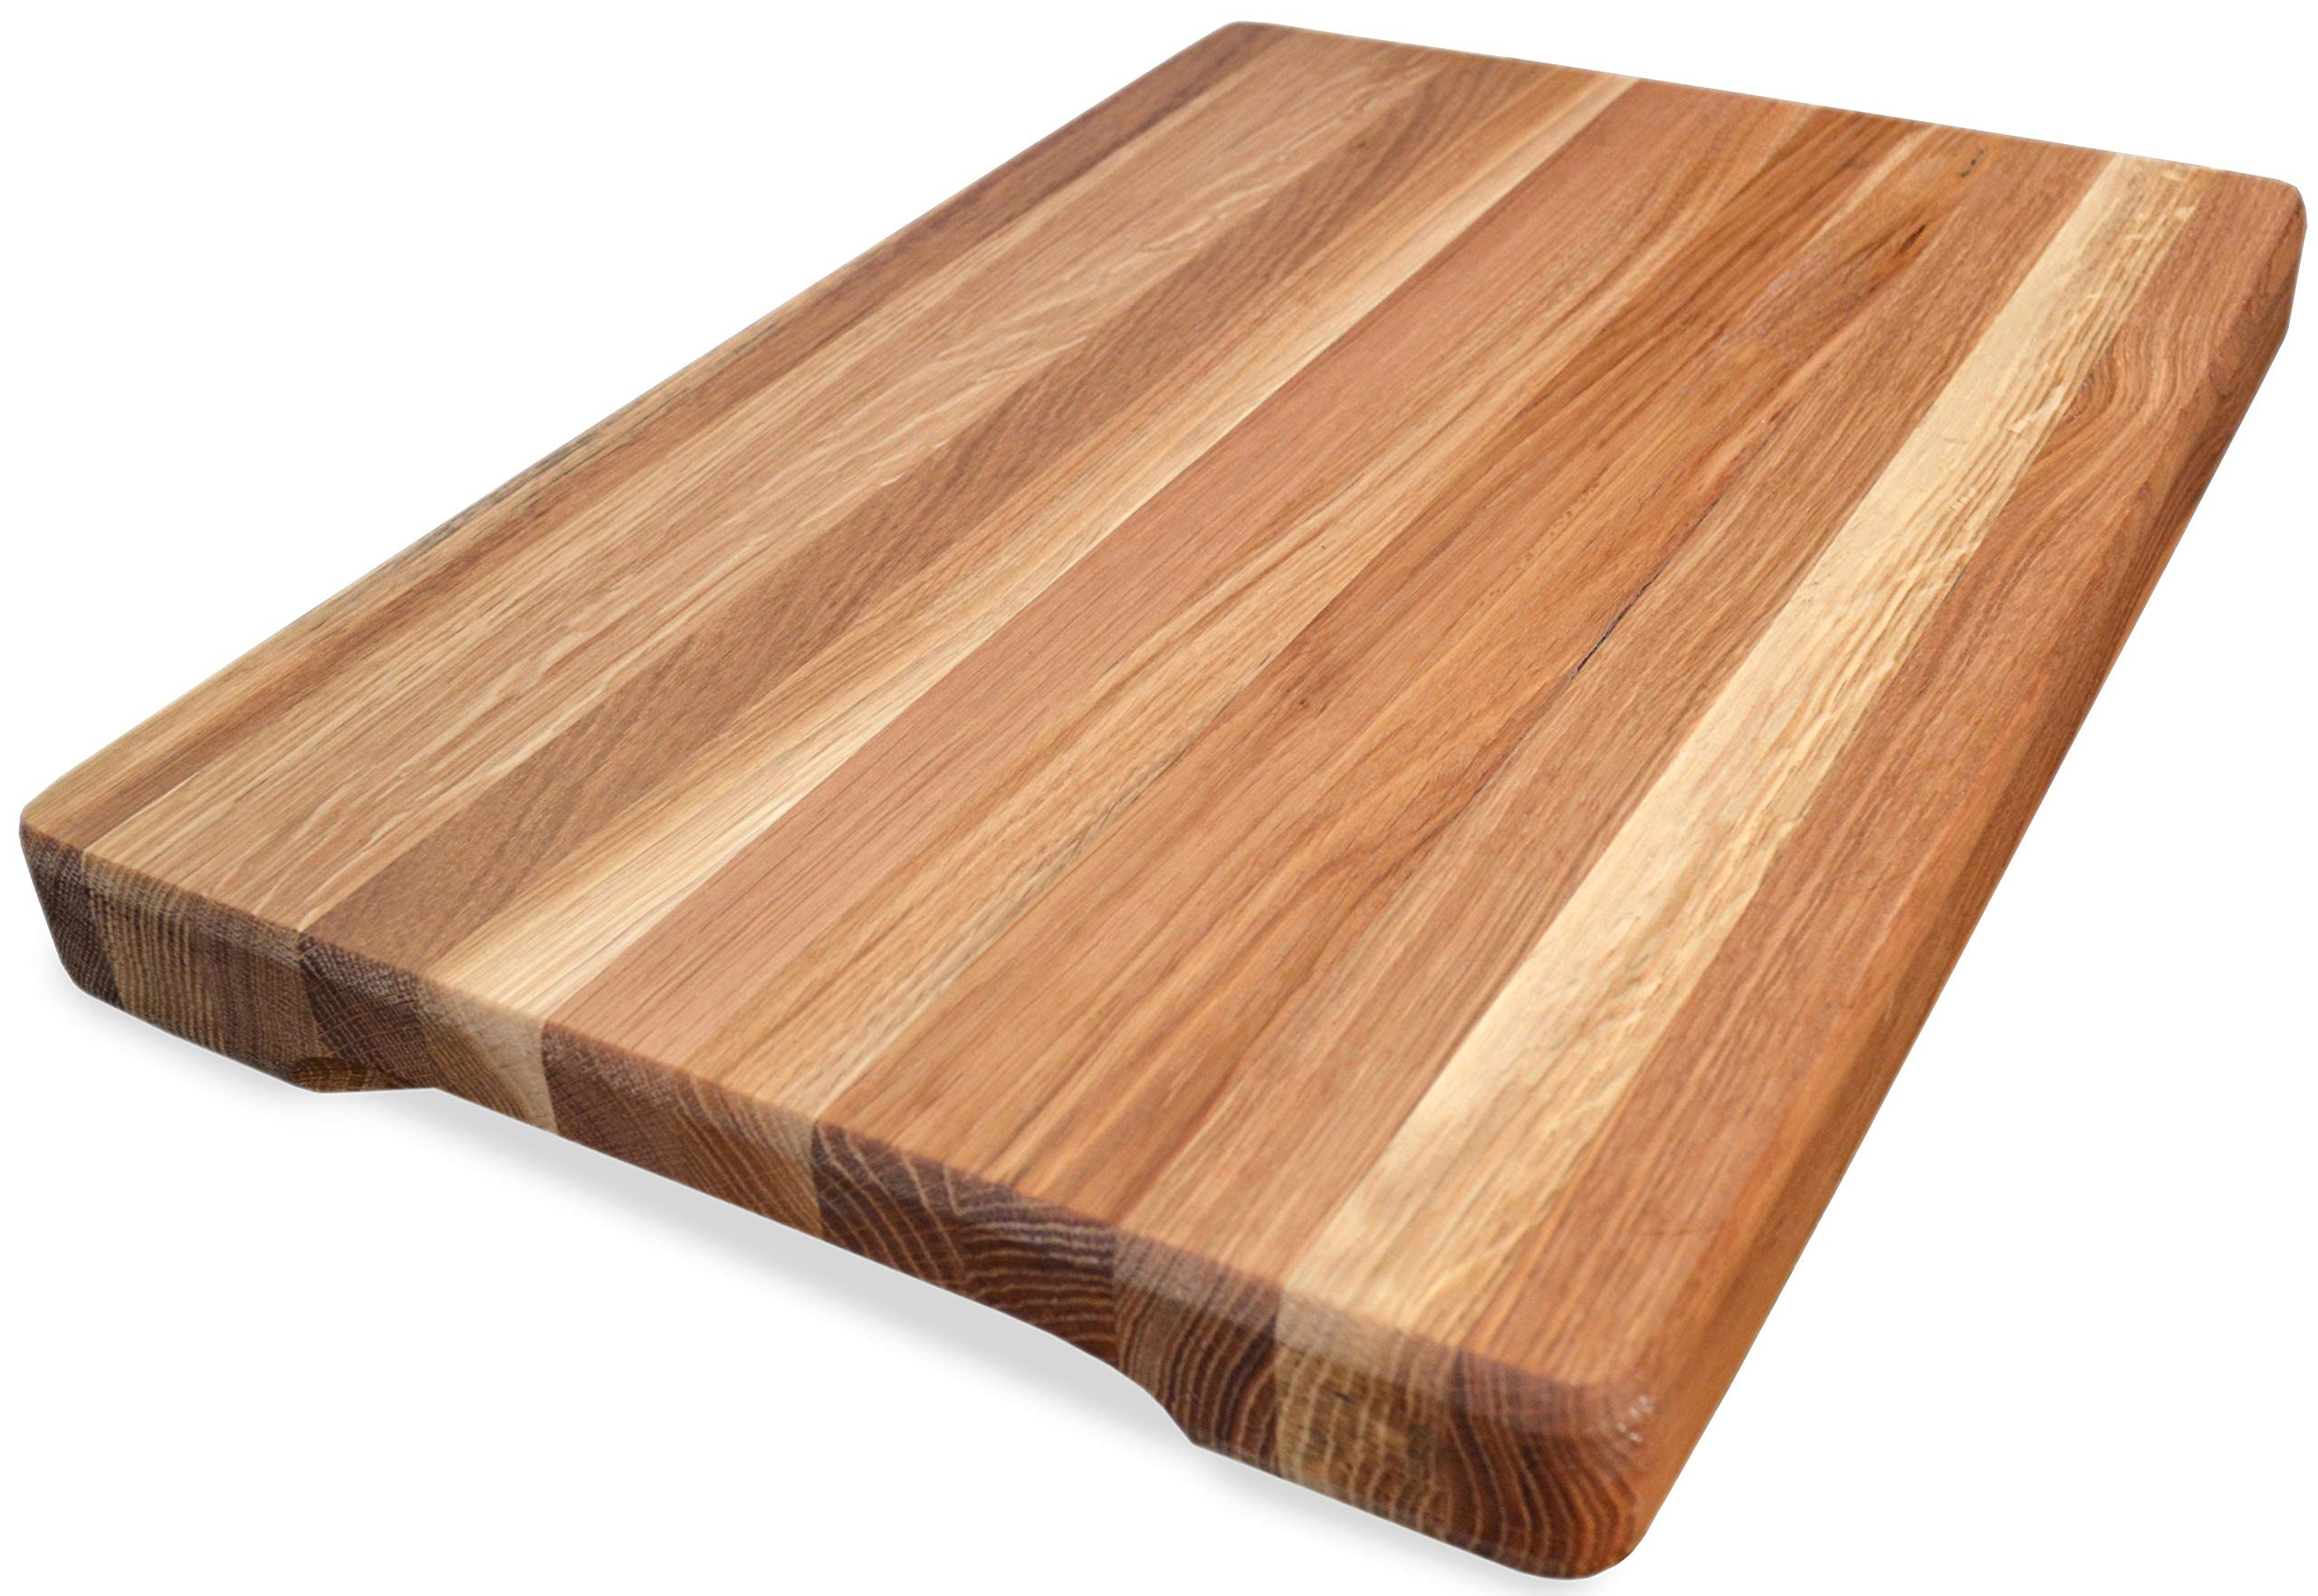 NaturalDesign Cutting Board 16 x 10 x 1.6 inch Edge Grain Chopping Block Wood: Maple & Oak Hardwood Extra Thick Appetizer Serving Platter Durable & Resistant by NaturalDesign (Image #1)